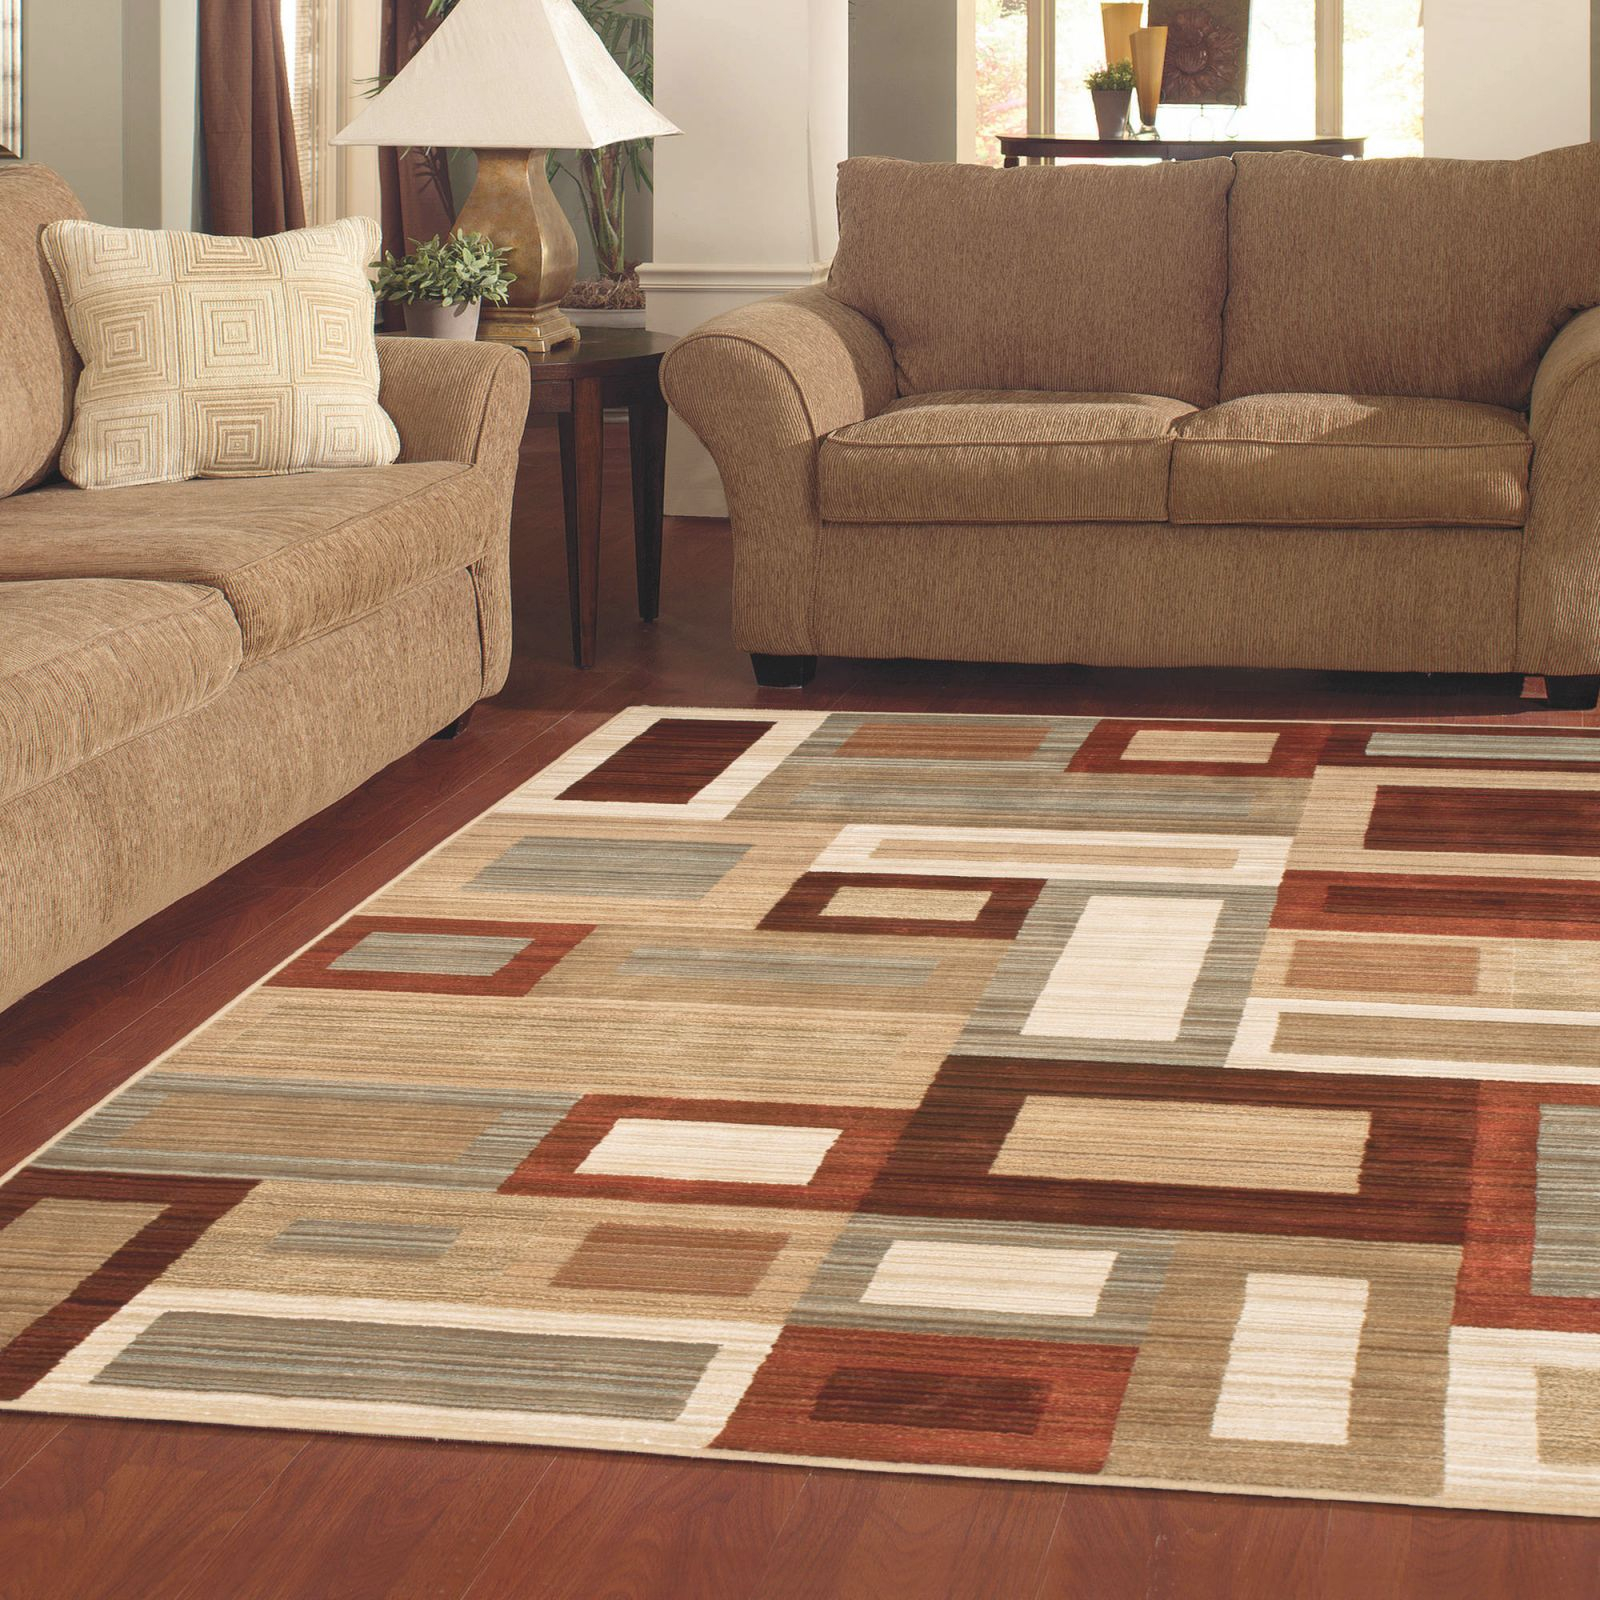 Lovely Rugs For Living Room Ideas - Awesome Decors